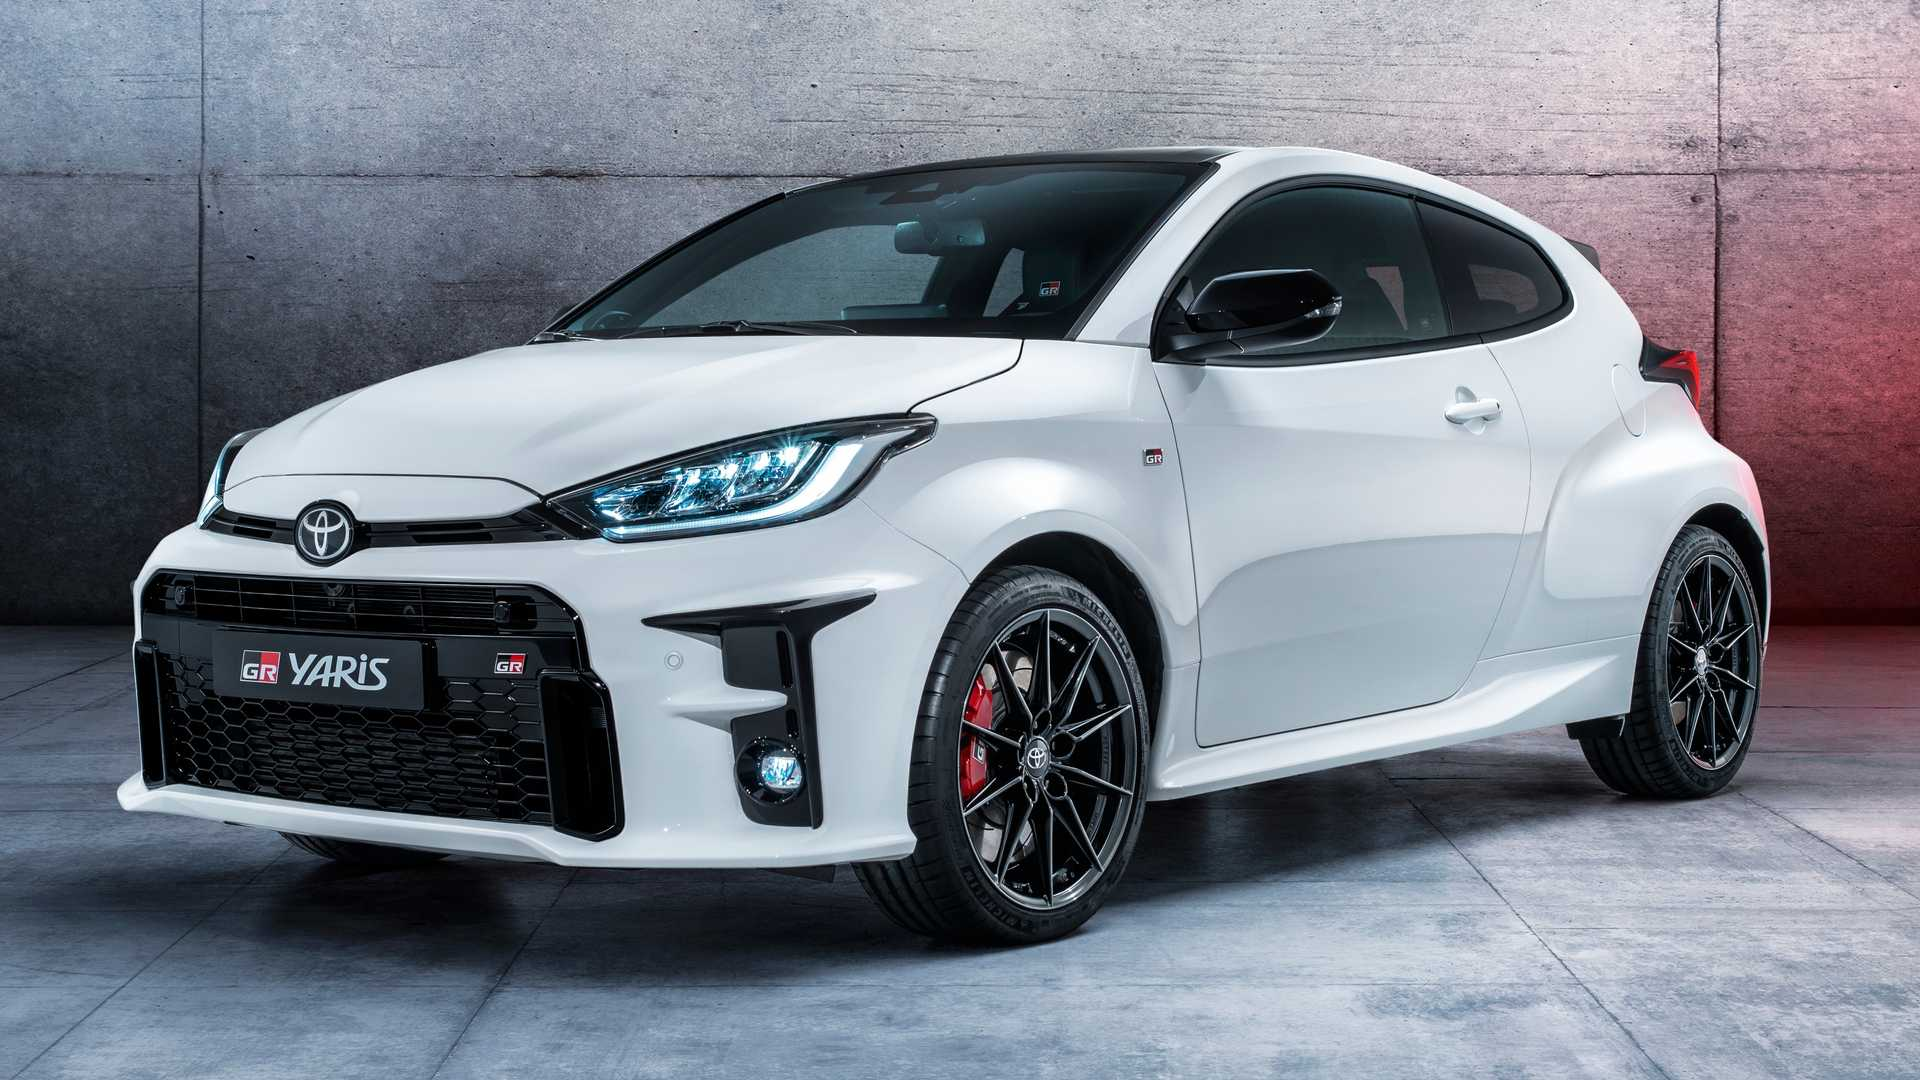 Coming In Hot: Toyota Bringing A GR Corolla To The USA – Horsepower, Six-Speed, AWD!